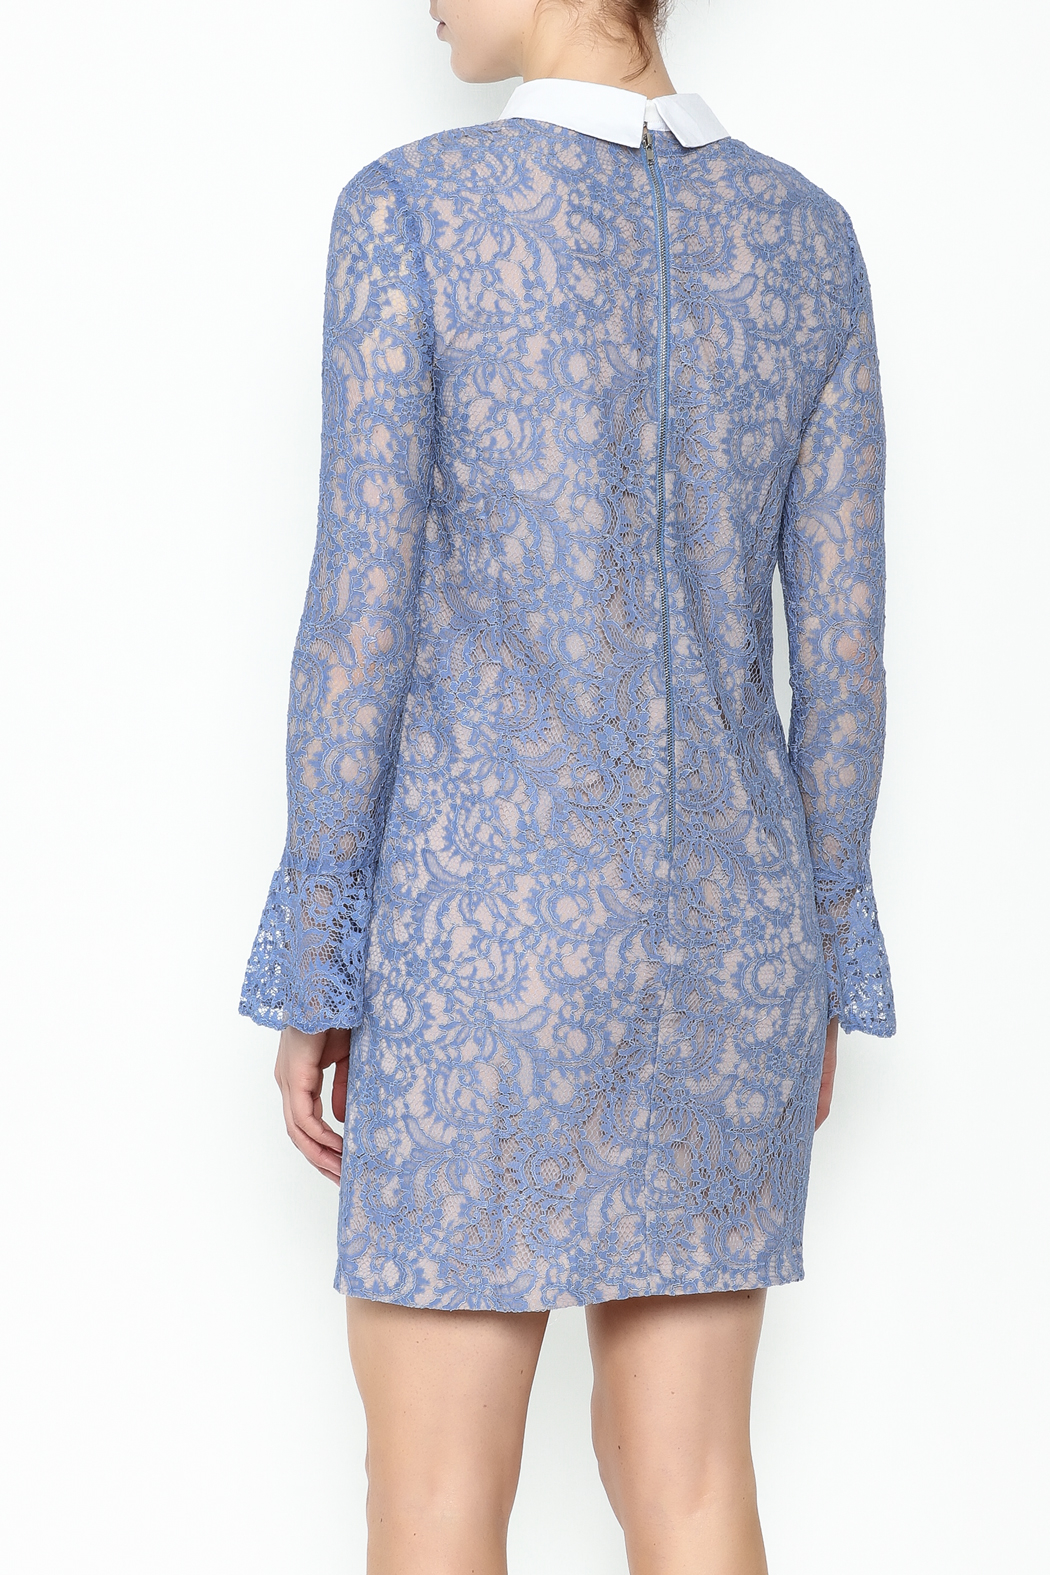 English Factory Collar Lace Bell Sleeve Dress - Back Cropped Image